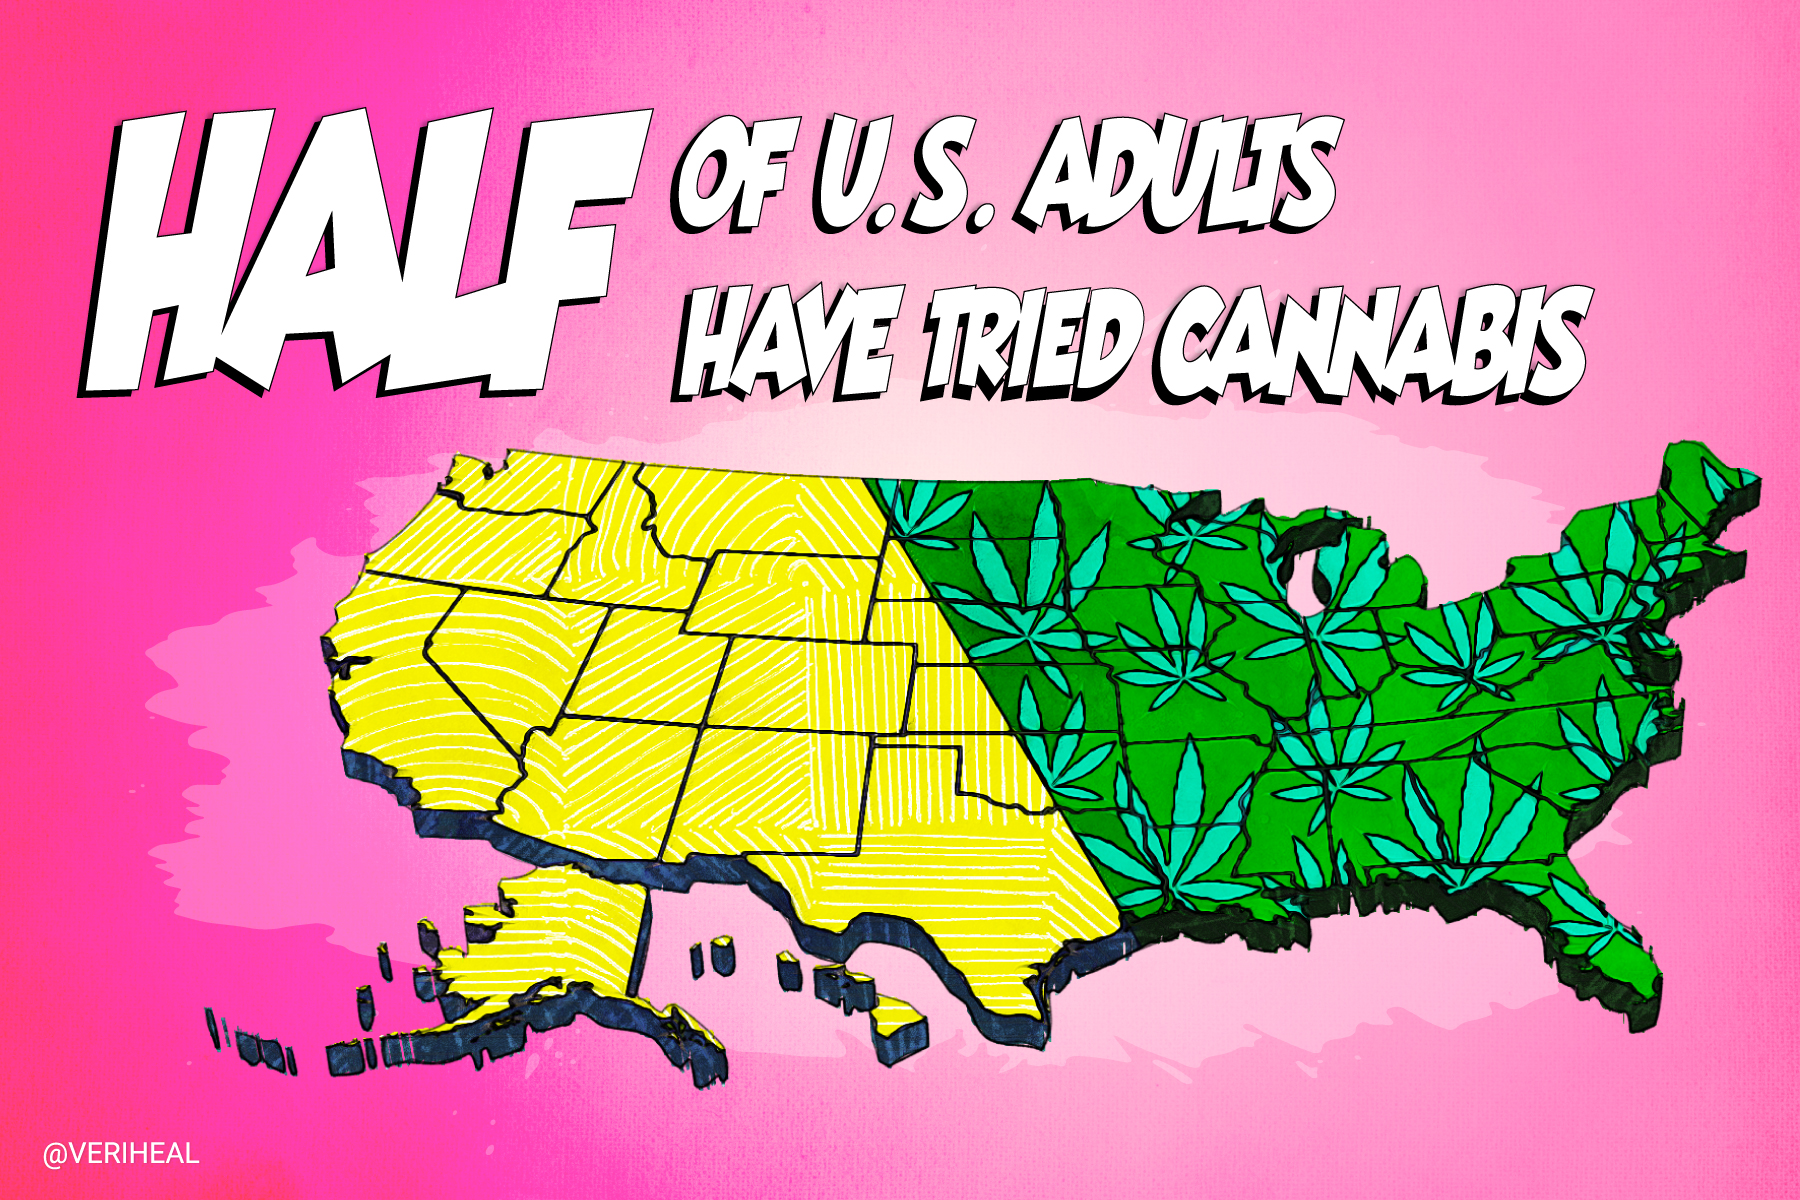 Recent Poll Reveals Half of US Adults Have Tried Cannabis